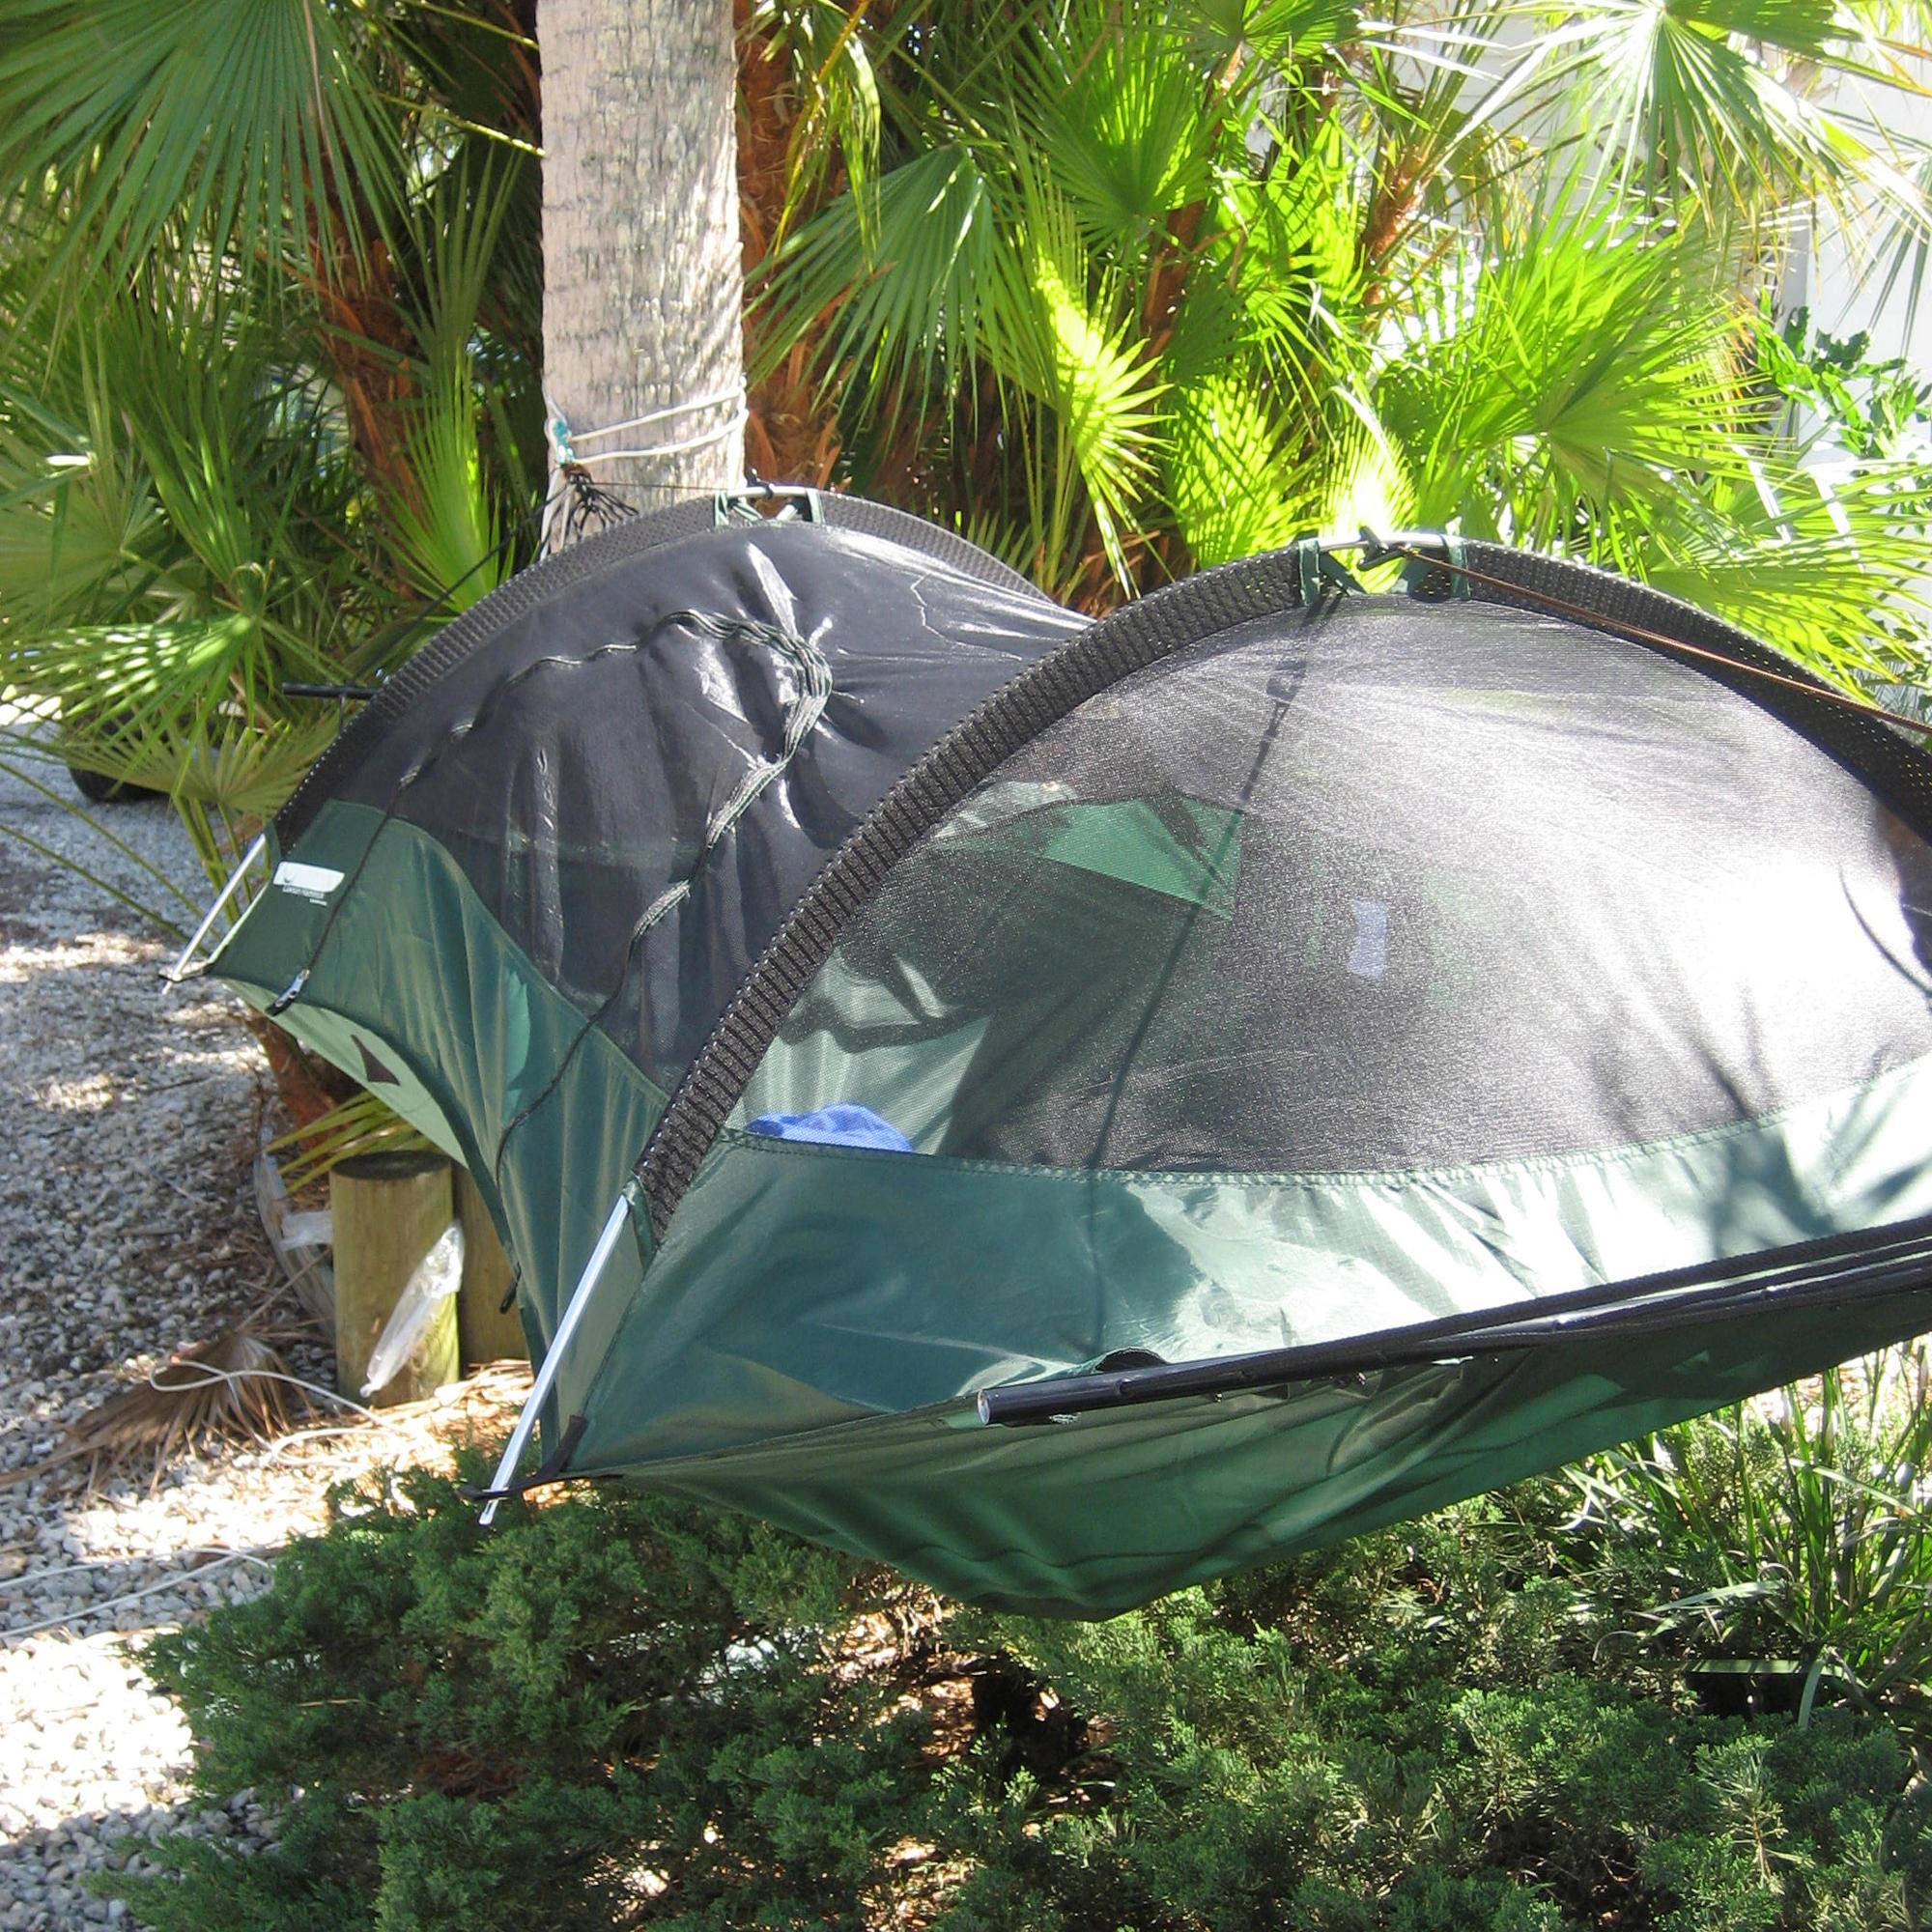 Lawson Hammock Blue Ridge C&ing Tent - Green : hammock tents for two - memphite.com